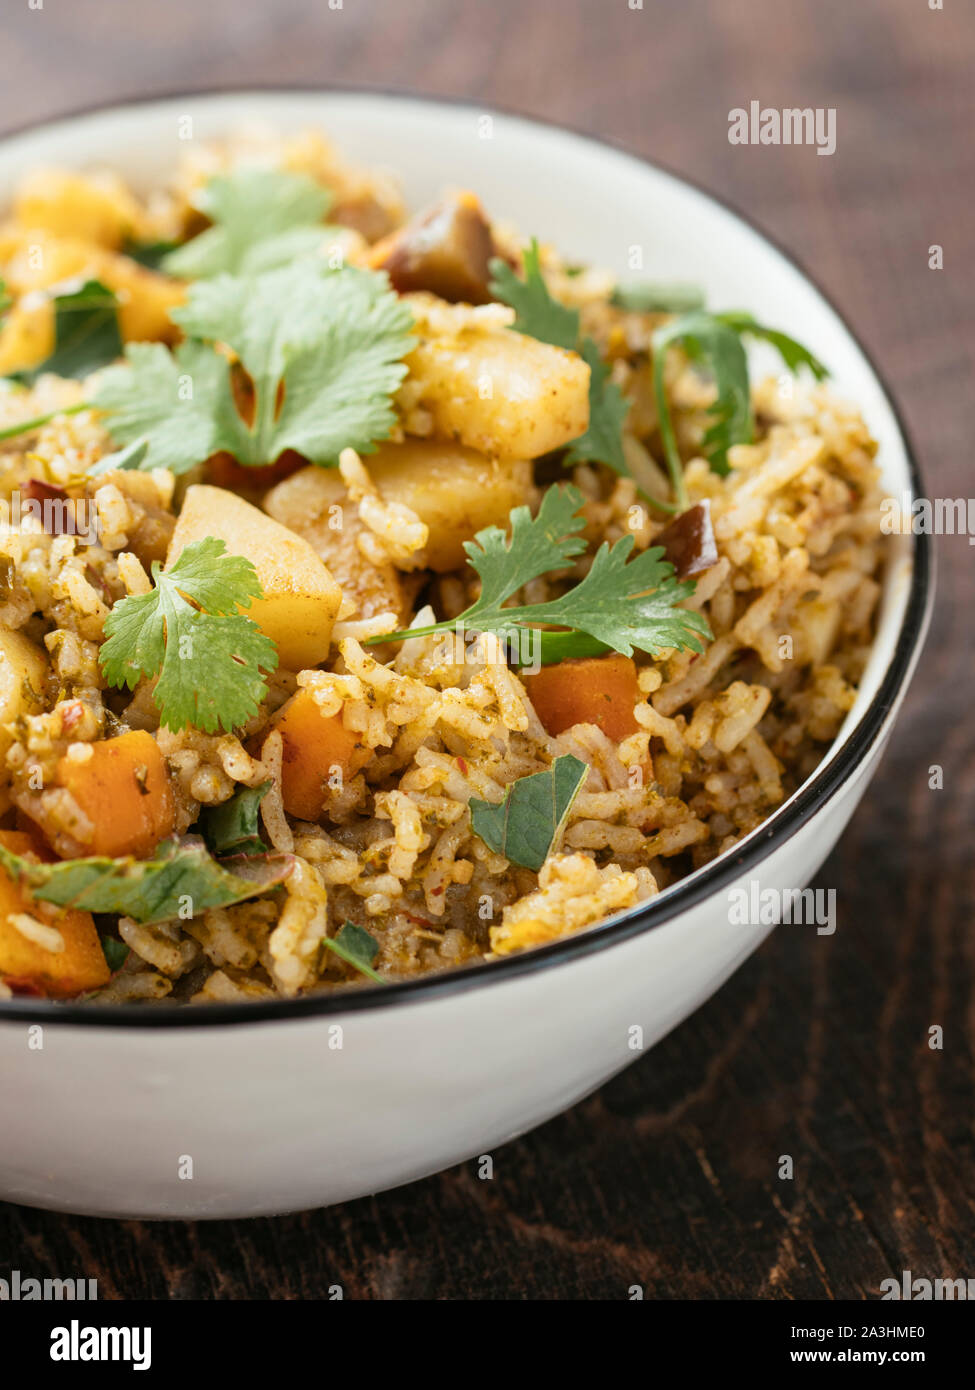 Gongura Biryani with rice, roselle leaves, carrots, potatoes, eggplant and onions Stock Photo